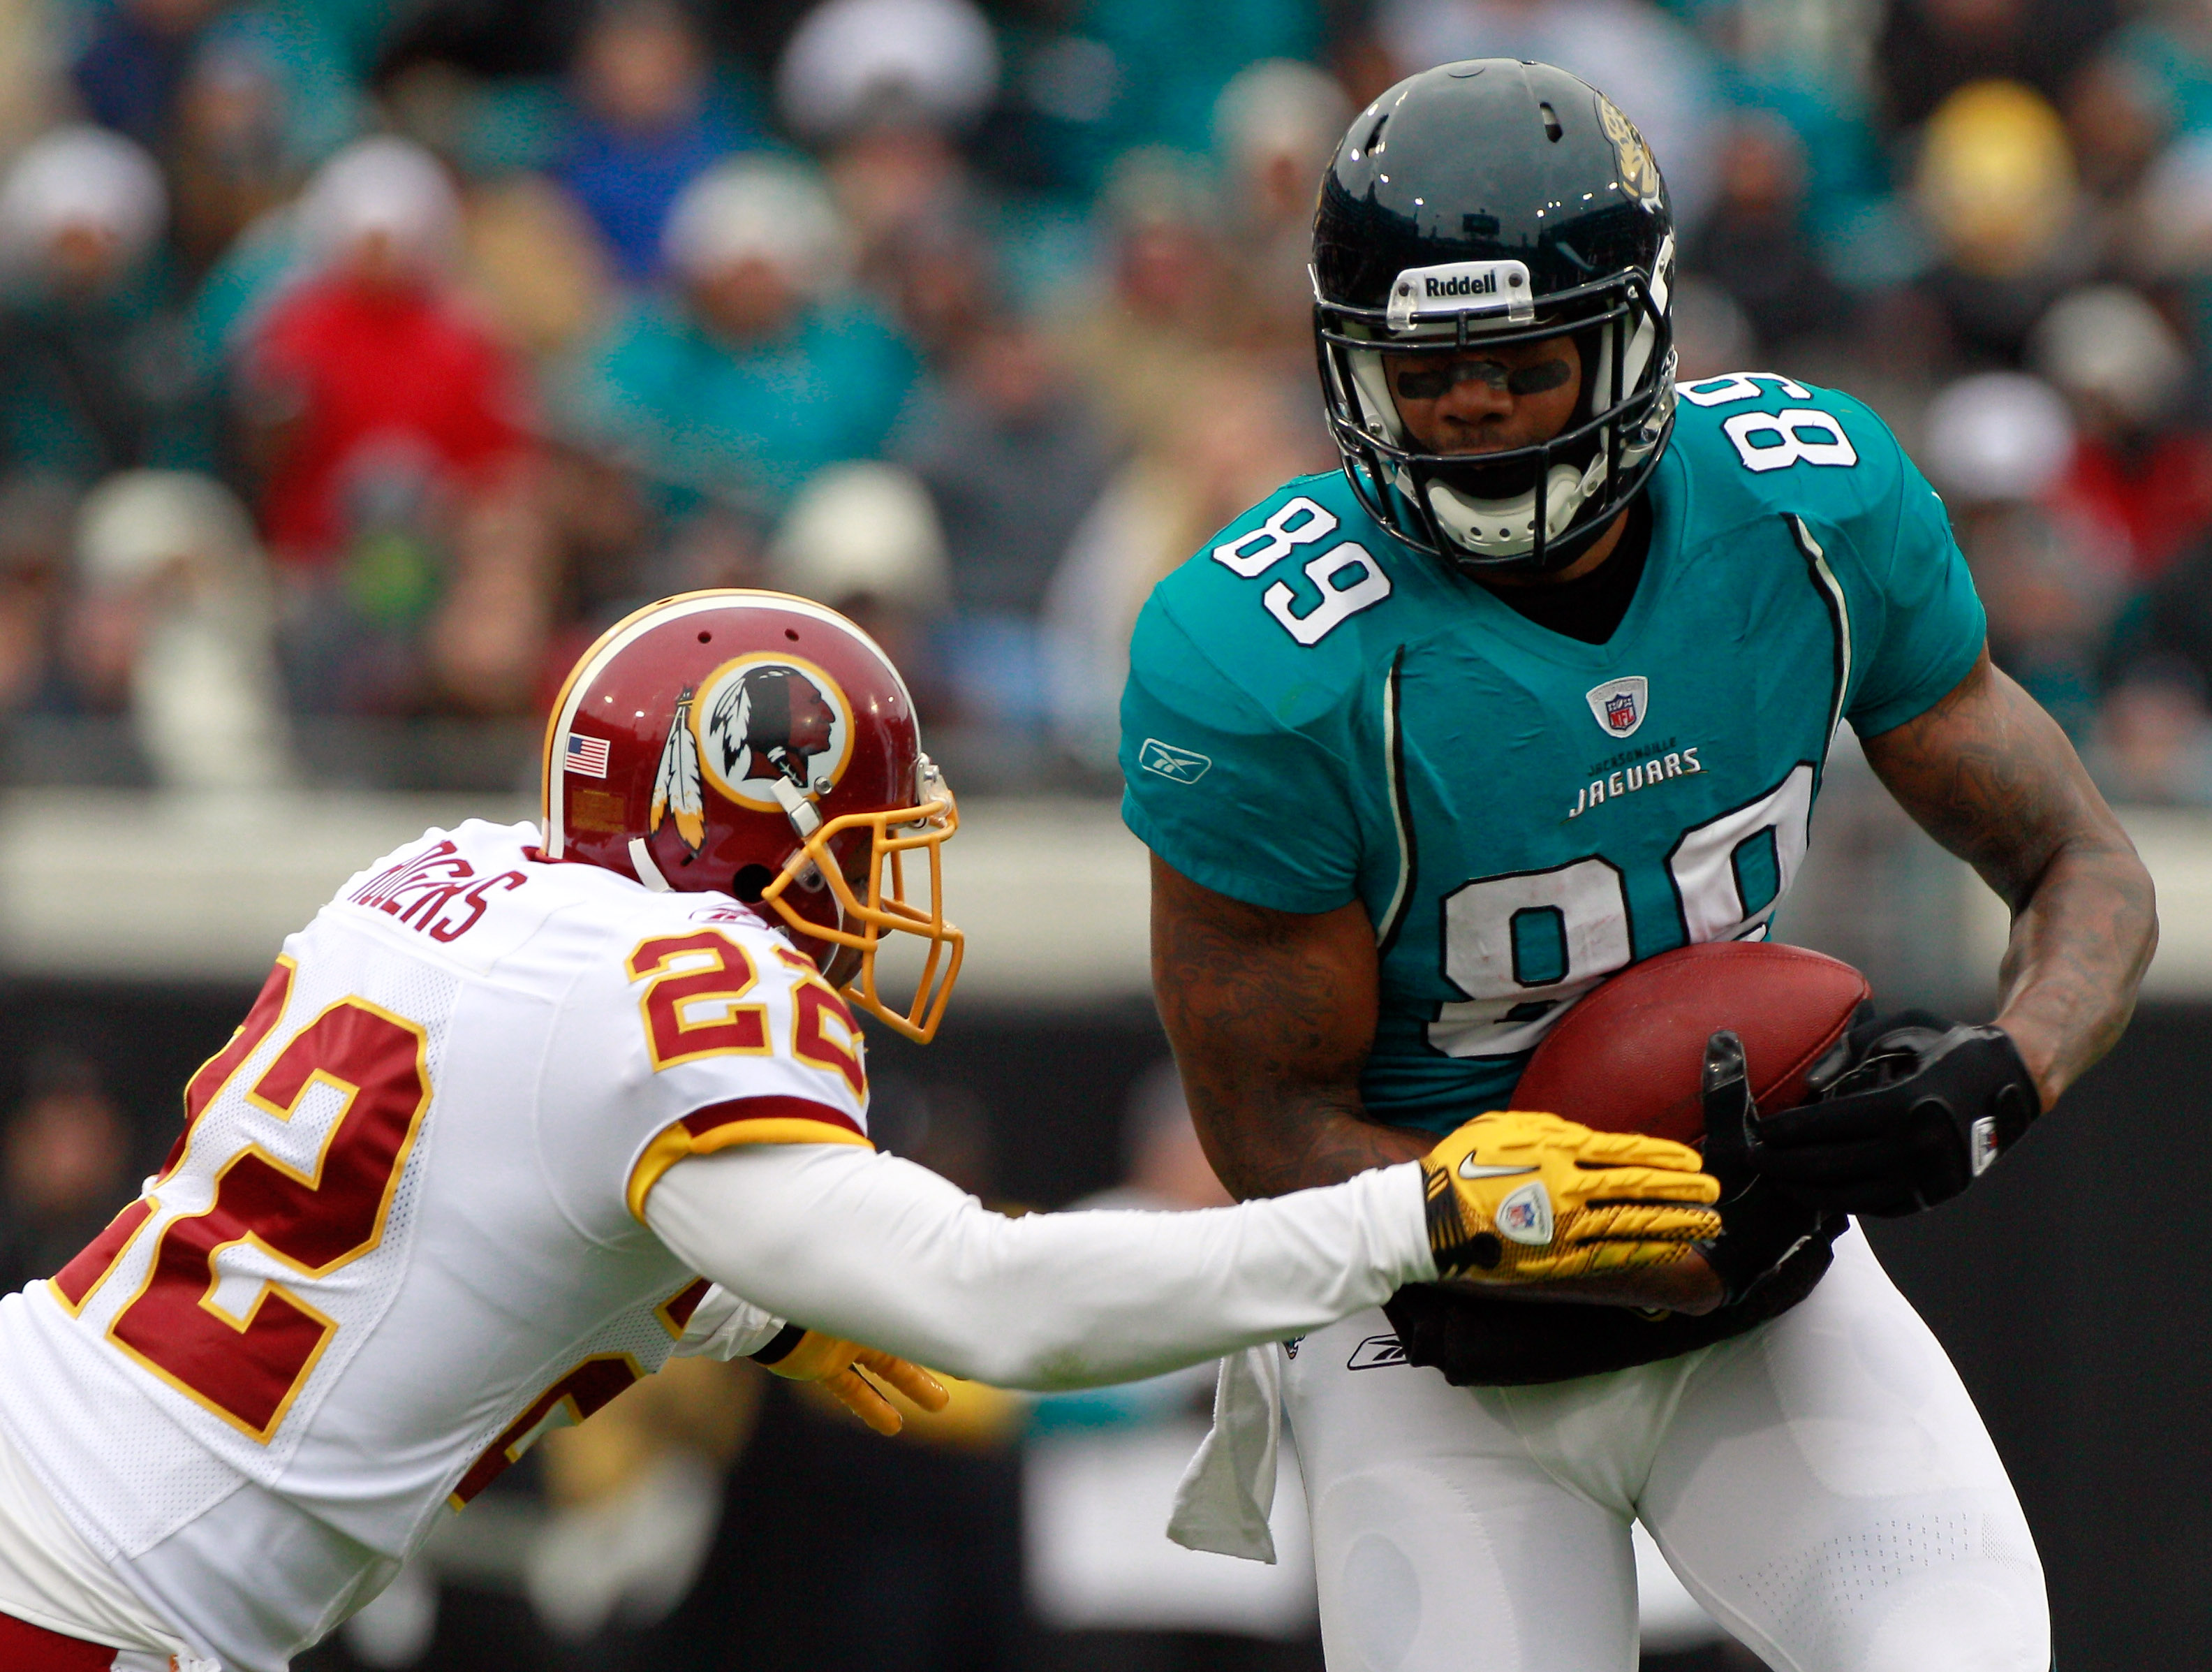 JACKSONVILLE, FL - DECEMBER 26:  Carlos Rogers #22 of the Washington Redskins attempts to tackle #89 Marcedes Lewis #89 of the Jacksonville Jaguars  during the game at EverBank Field on December 26, 2010 in Jacksonville, Florida.  (Photo by Sam Greenwood/